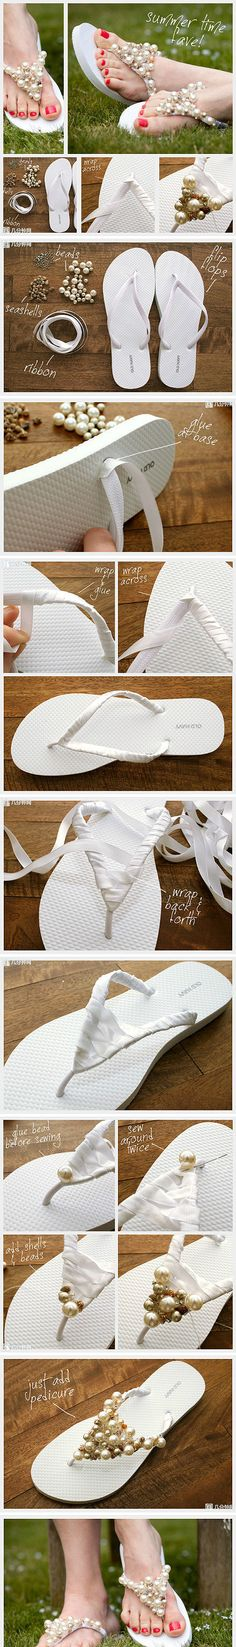 Beauty Sandal